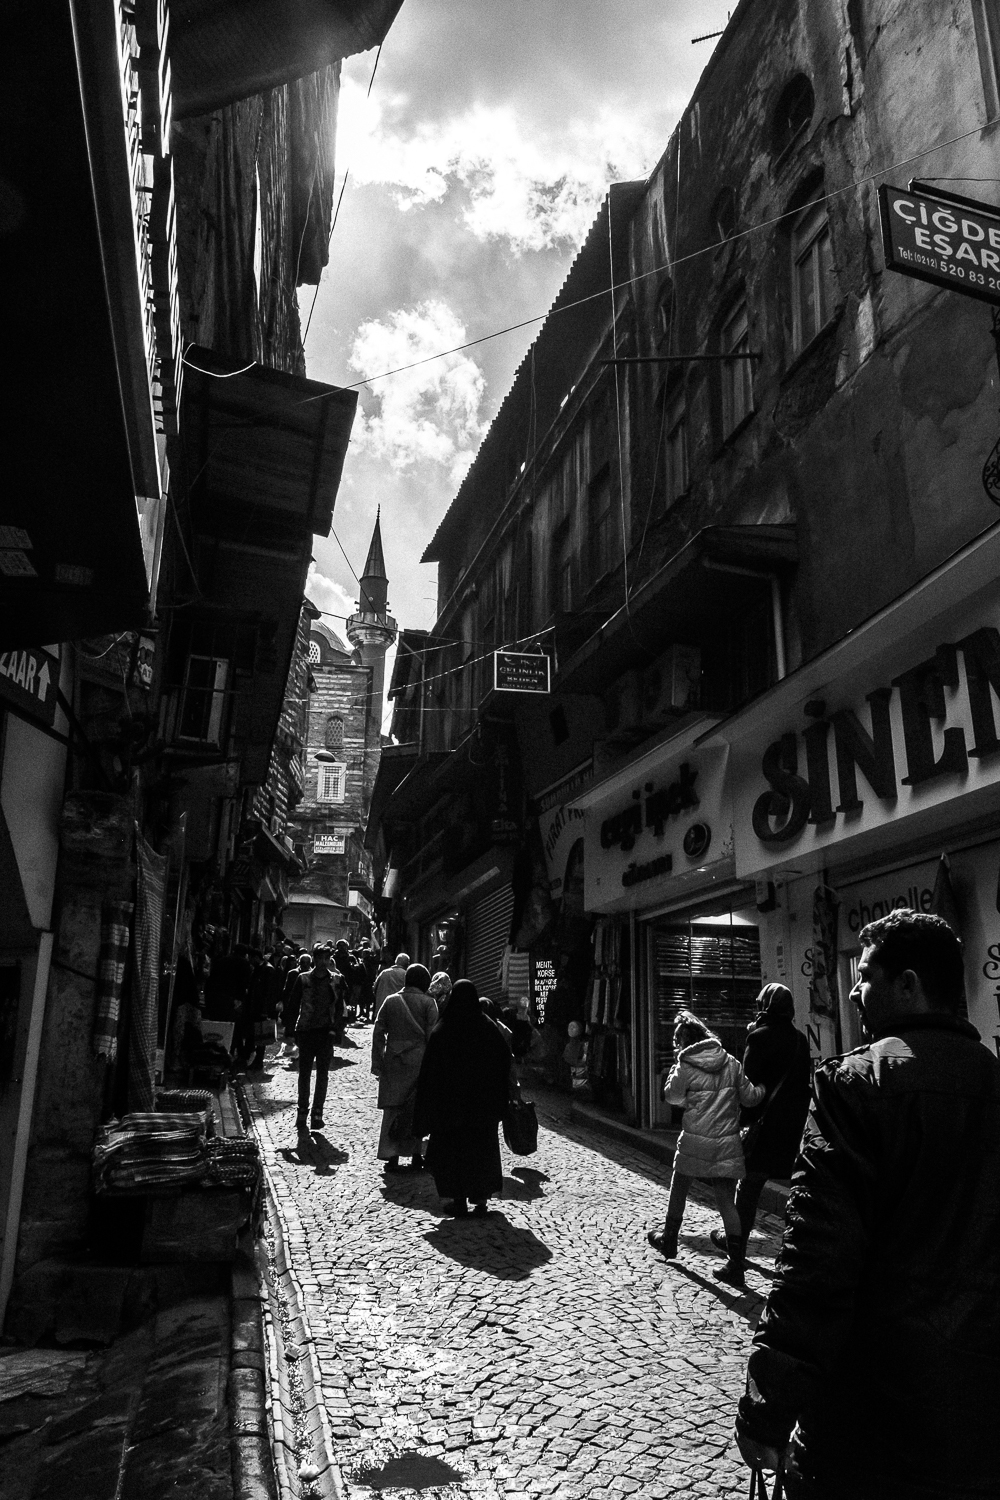 Chiaroscuro in Istanbul. The technique is marked by the use of strong tonal contrasts. Upon developing images I made in Istanbul, I was surprised at how often I used chiaroscuro to illustrate my perceptions of the dual nature of the Turks. You can read more about that:  here .